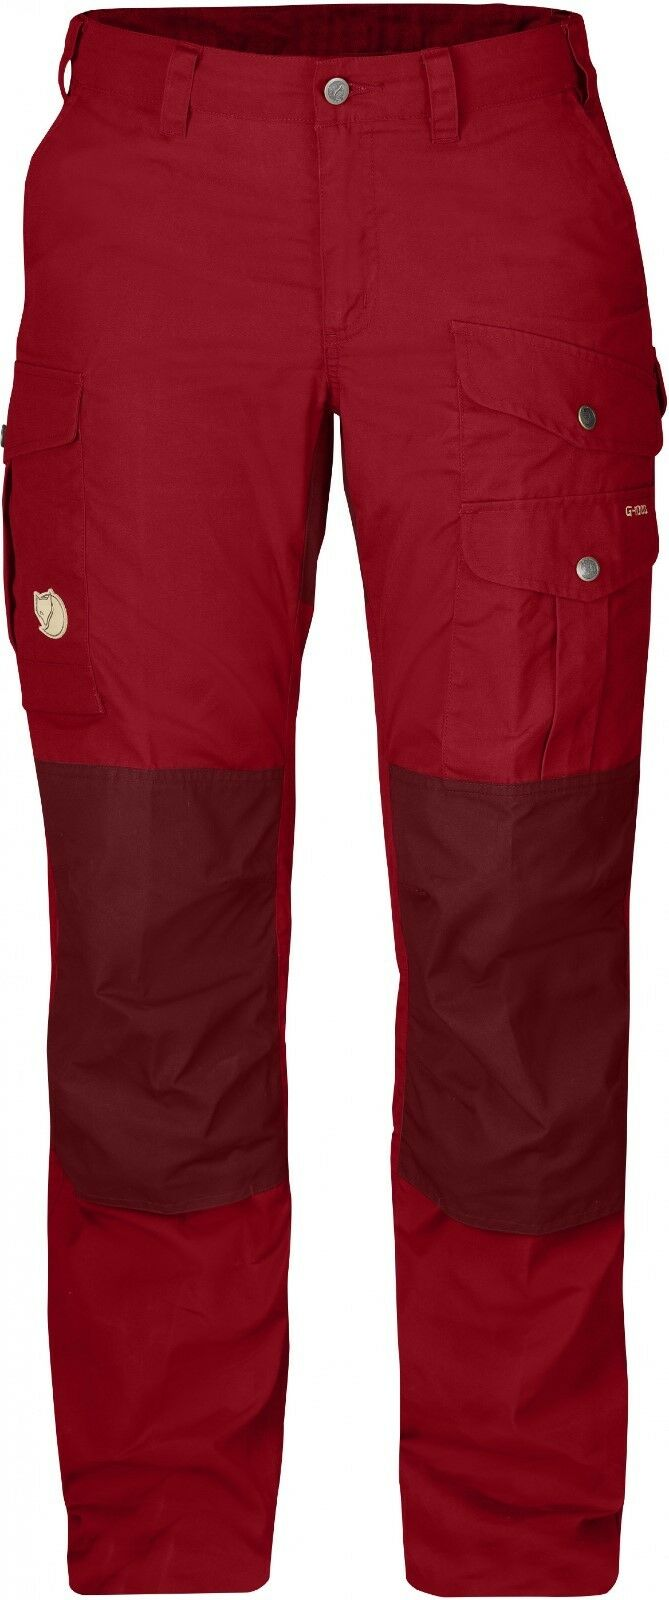 Fjäll Räven Barents Pro Women's Trousers, Women's Pants from G-1000, Deep Red